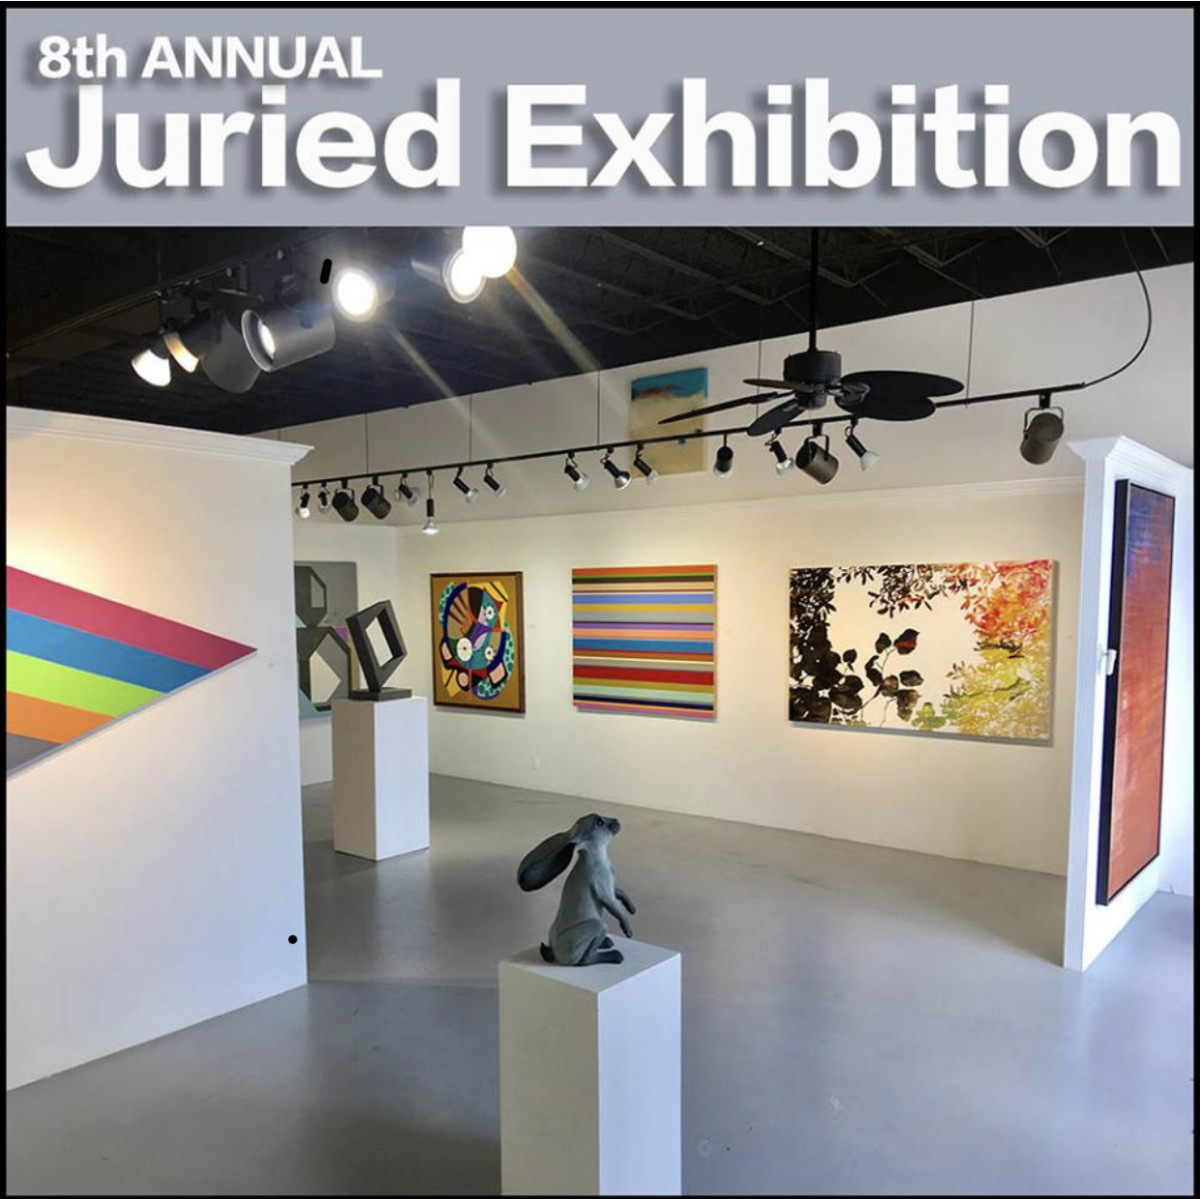 8th Annual Juried Exhibition